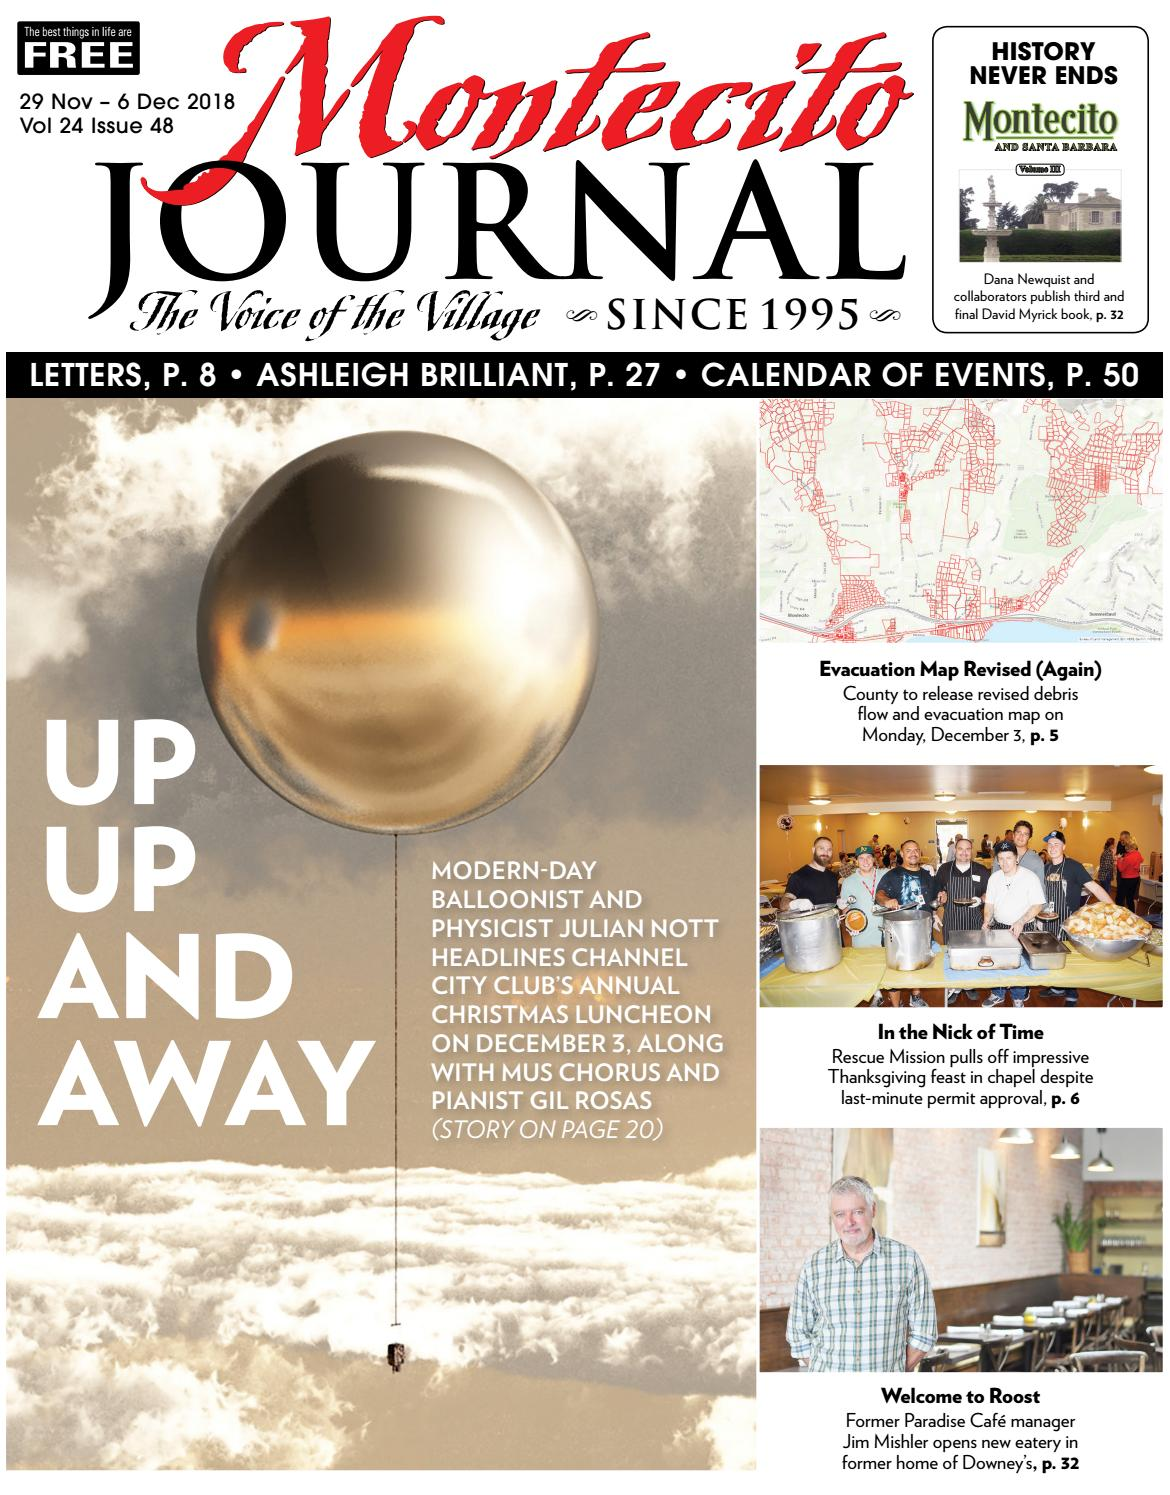 629b1174f758 Up Up and Away by Montecito Journal - issuu